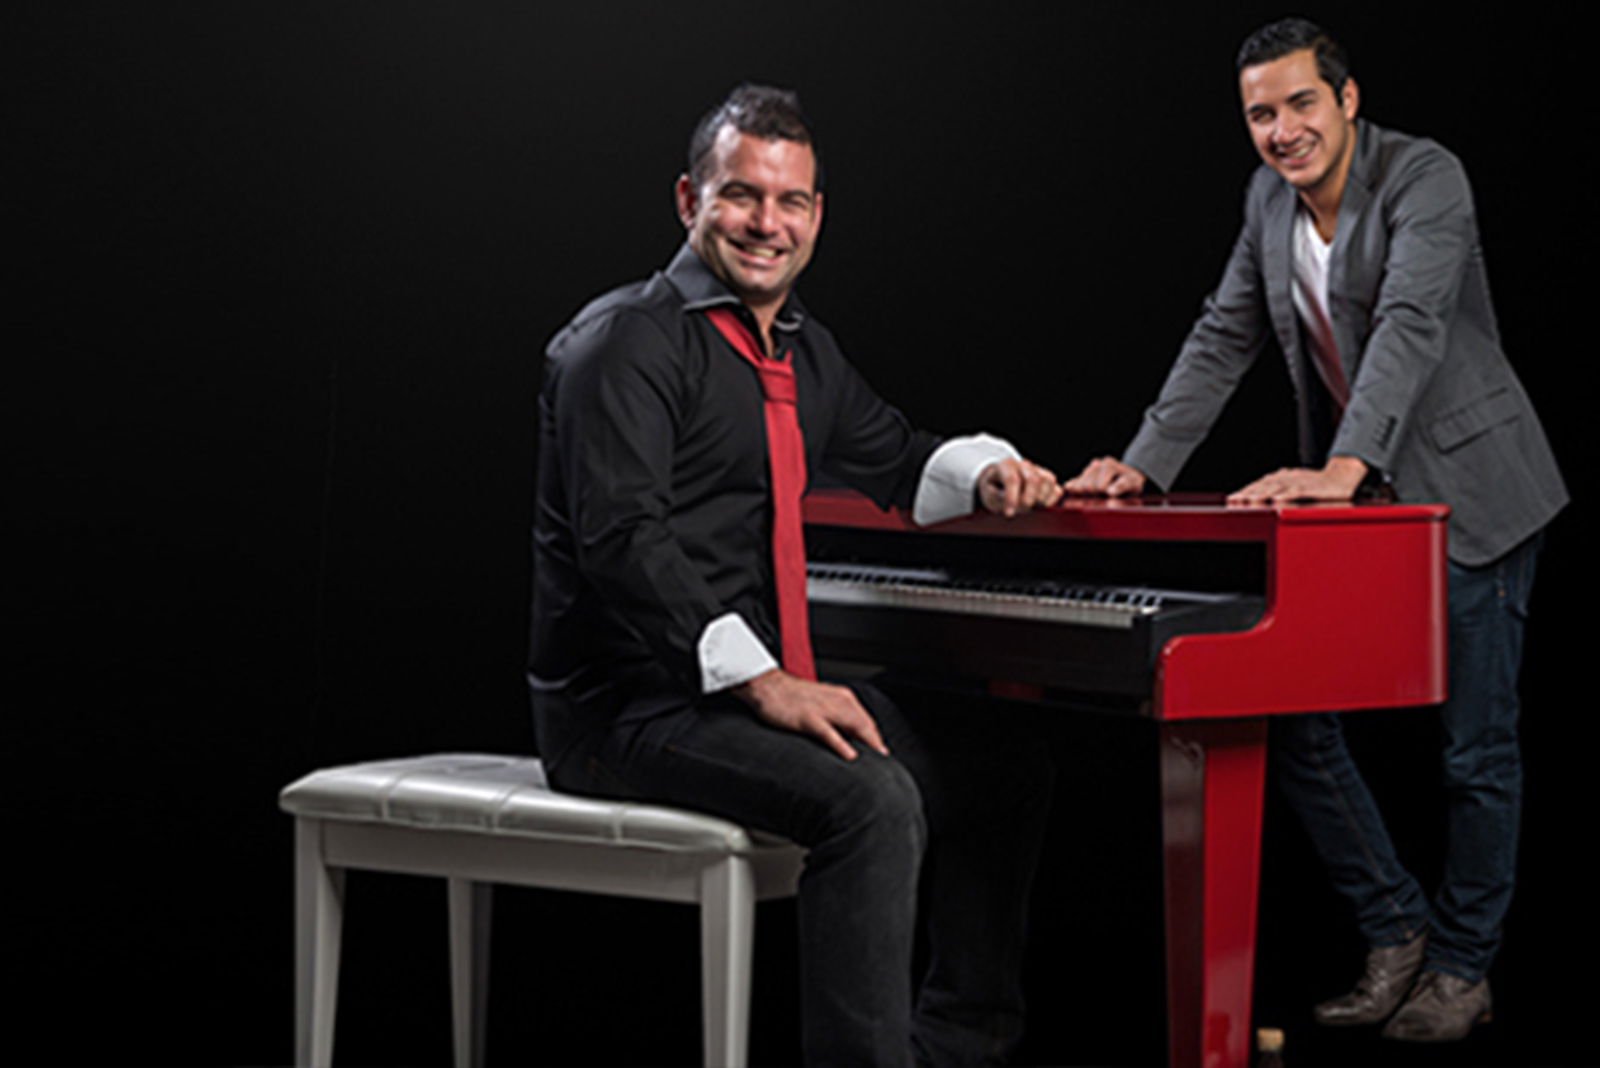 The Red Piano Show